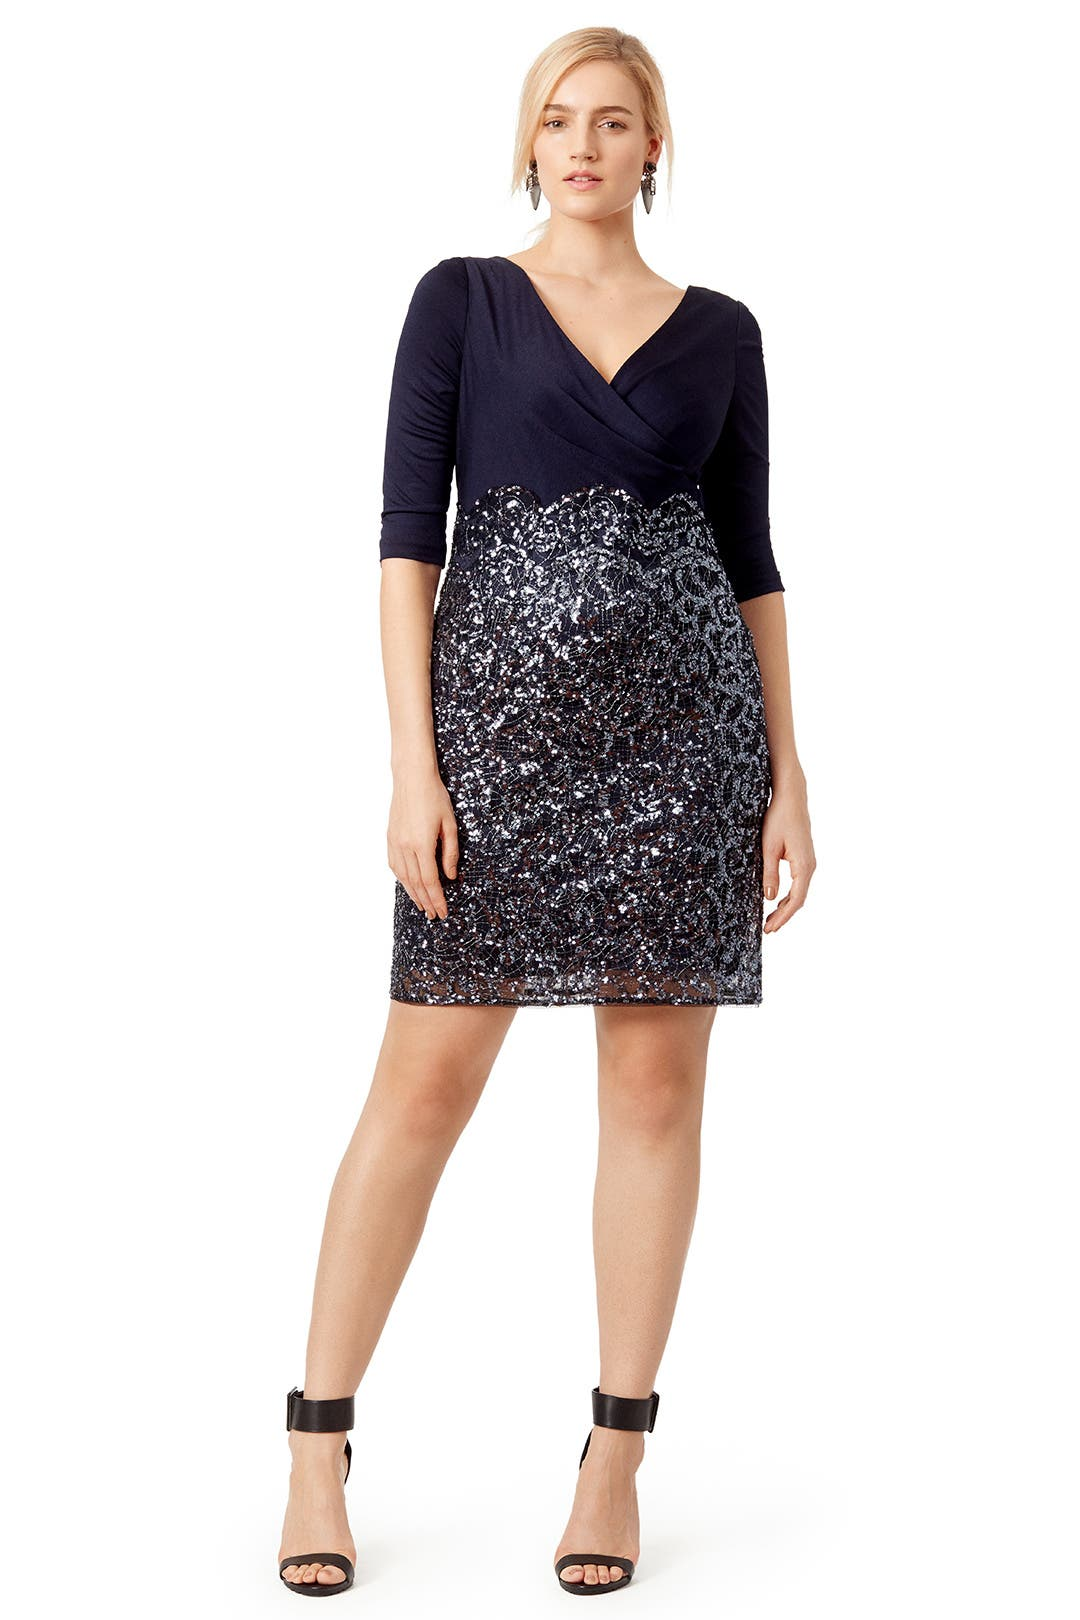 Plus-Size Dresses | Rent the Runway